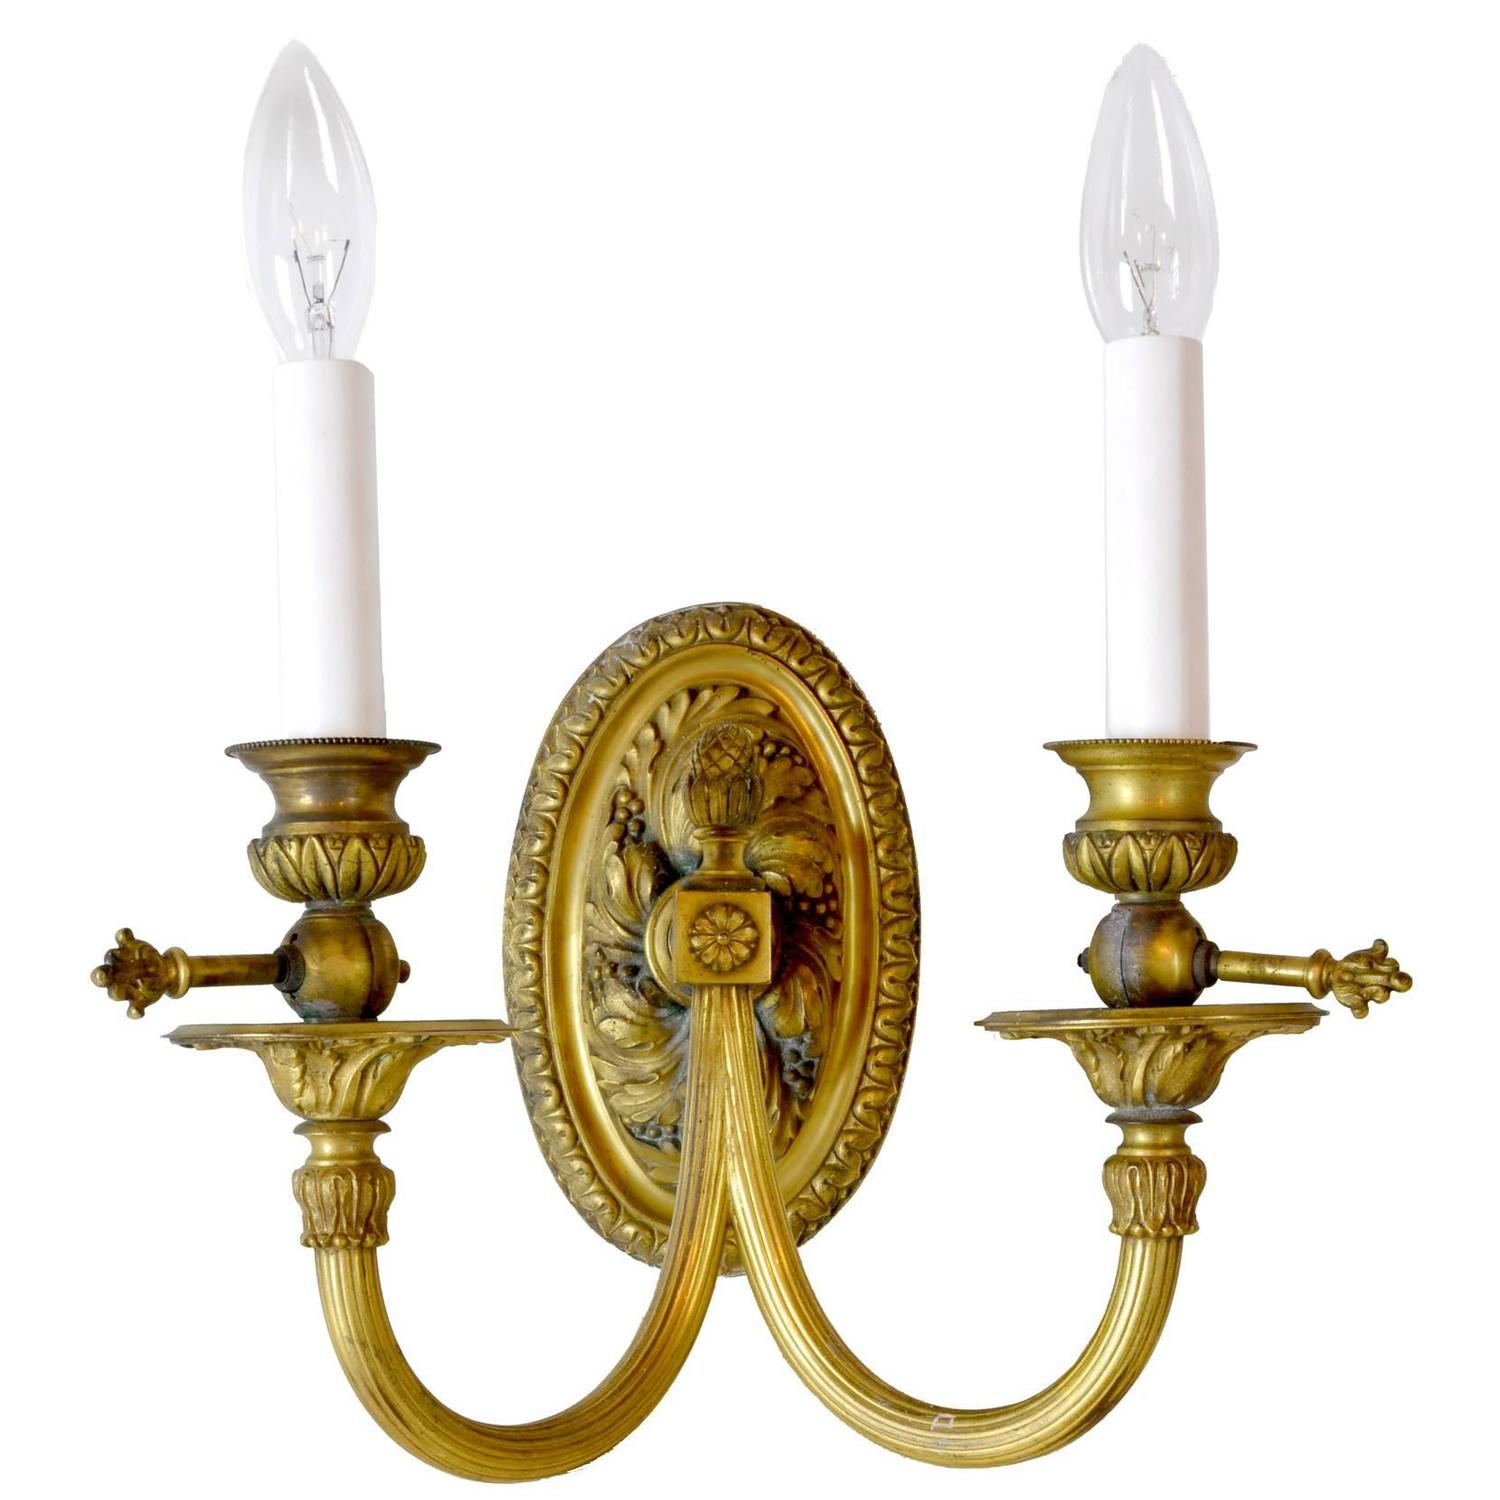 Fabulous Coverted Gas to Electric Cast Brass Sconces with Beautiful Details For Sale at 1stdibs